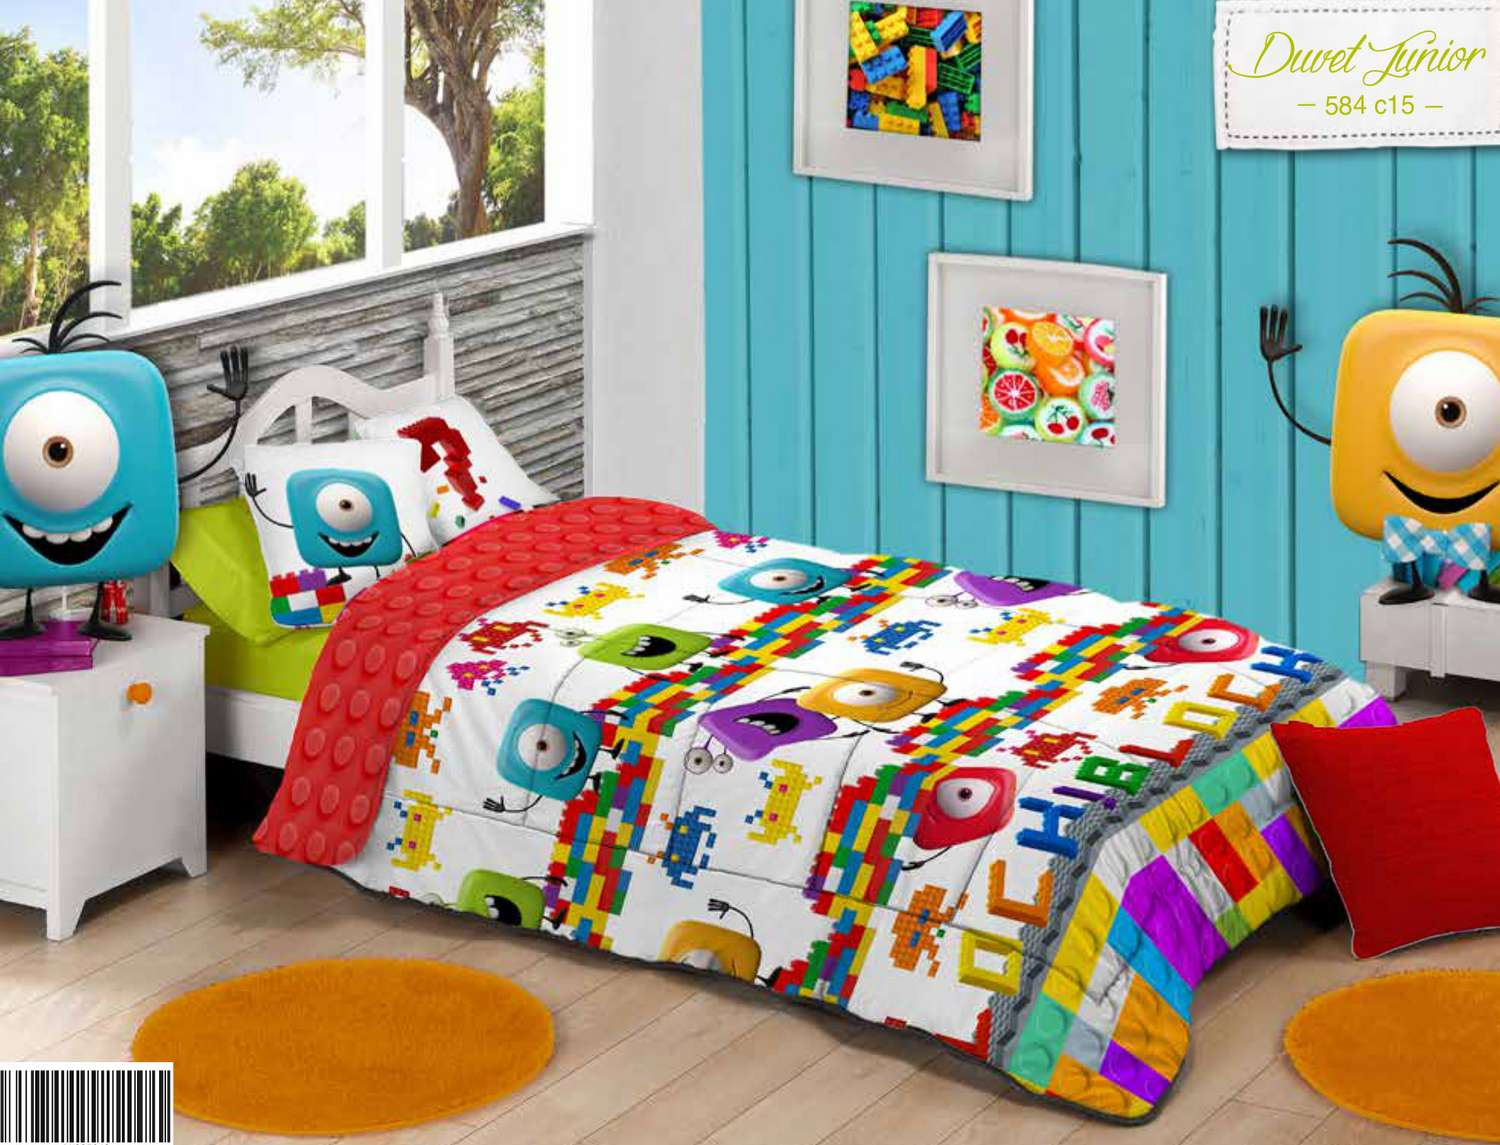 Manterol Duvet Junior Reversible Bloques 584